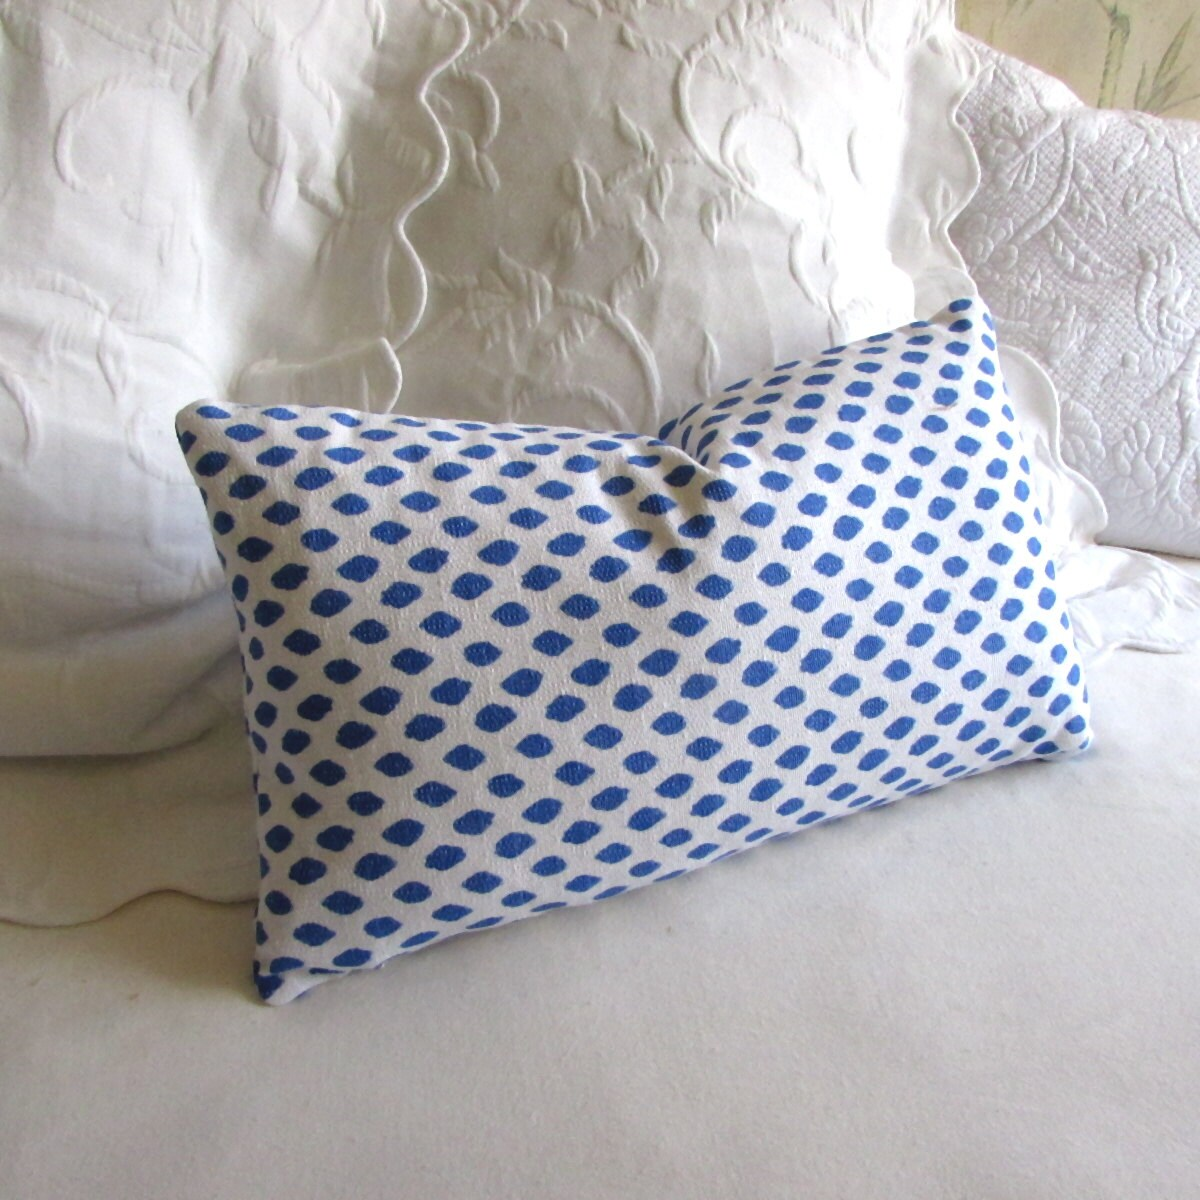 Sahara Pacific blue decorative Pillow 12x20 includes insert